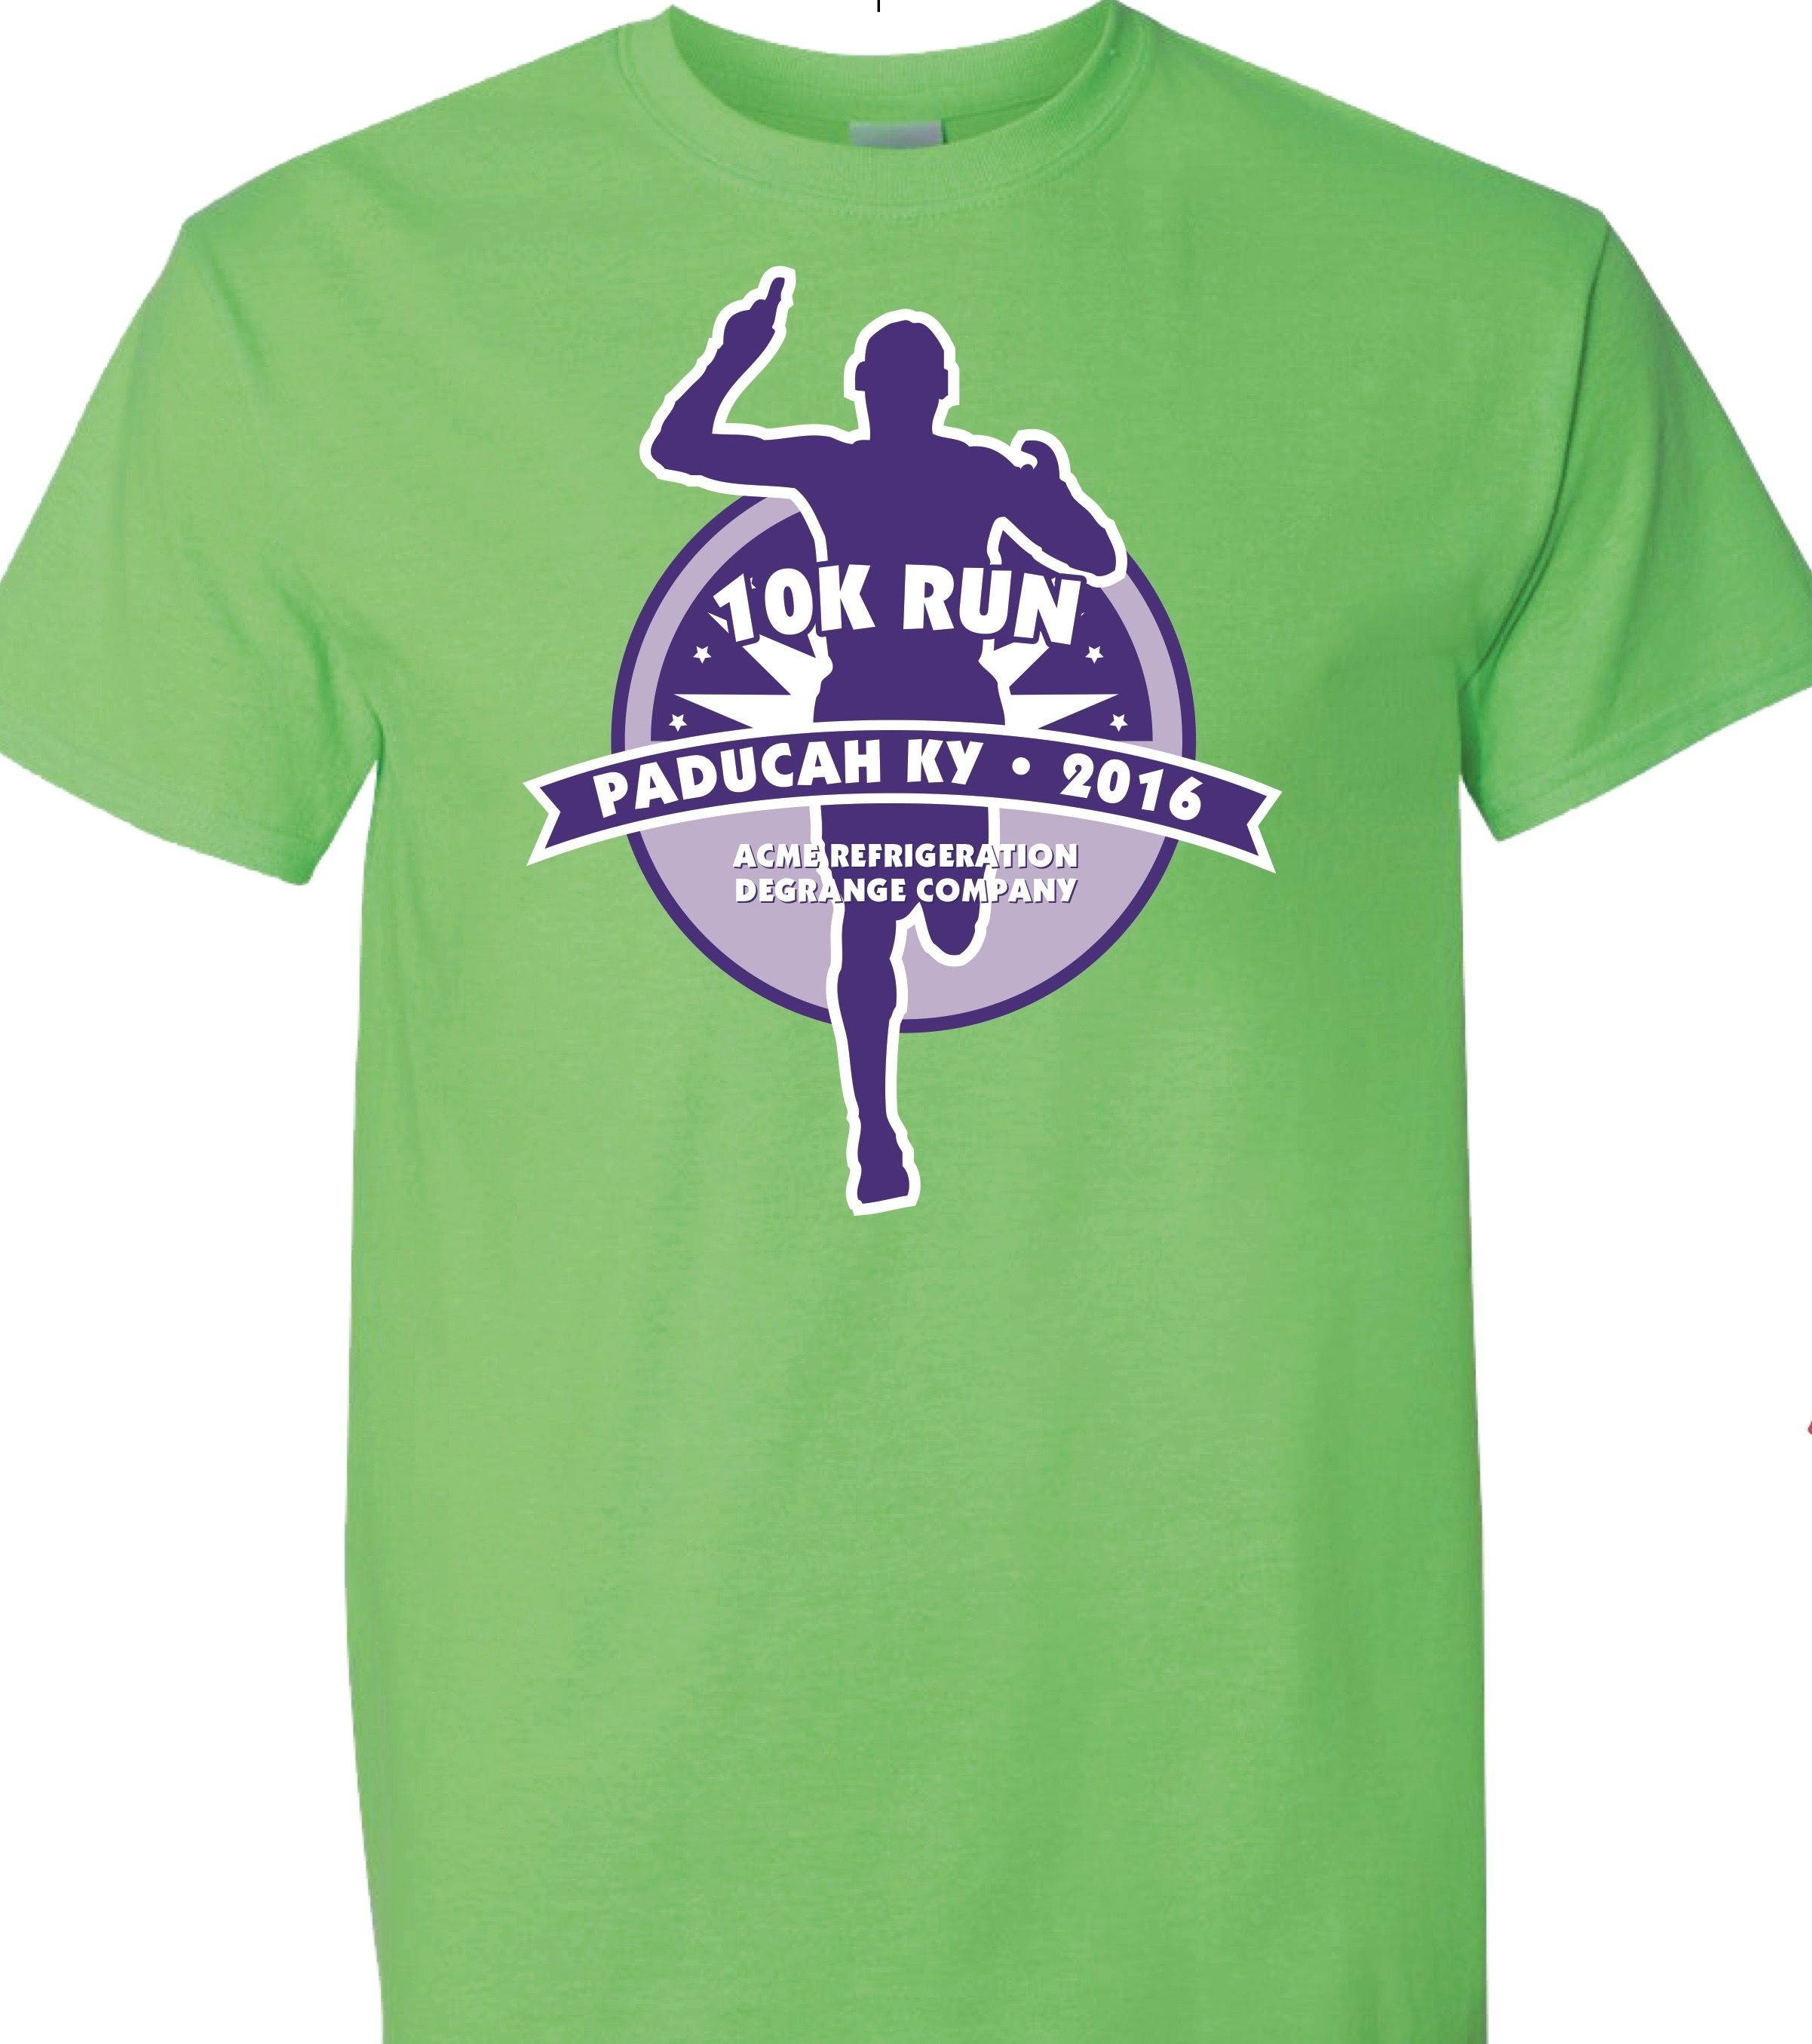 Design your own t shirt virtual - 5k Tee Design For Paducah S 10k Run Like This Design Let Us Help Create